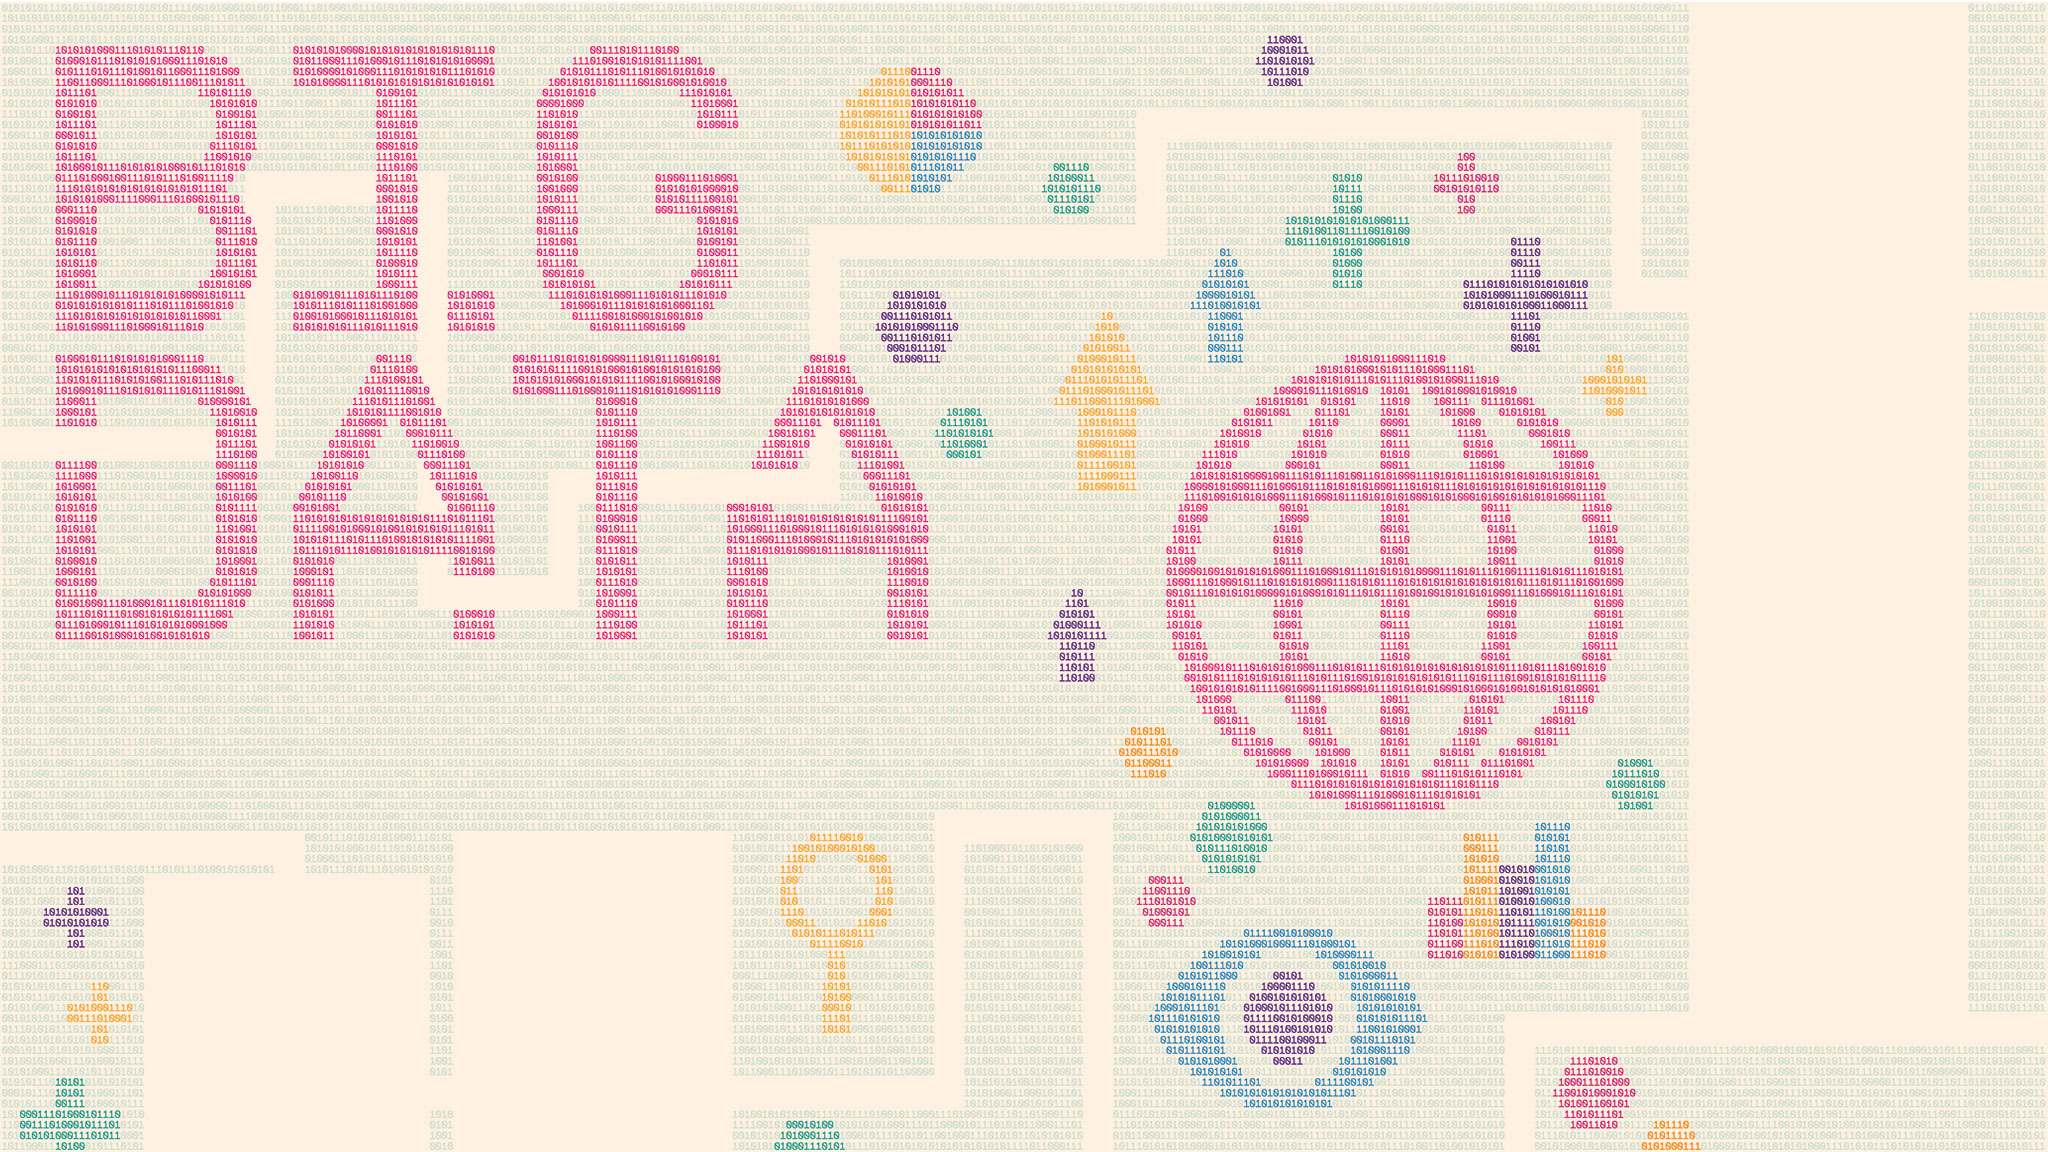 Big data: are we making a big mistake?